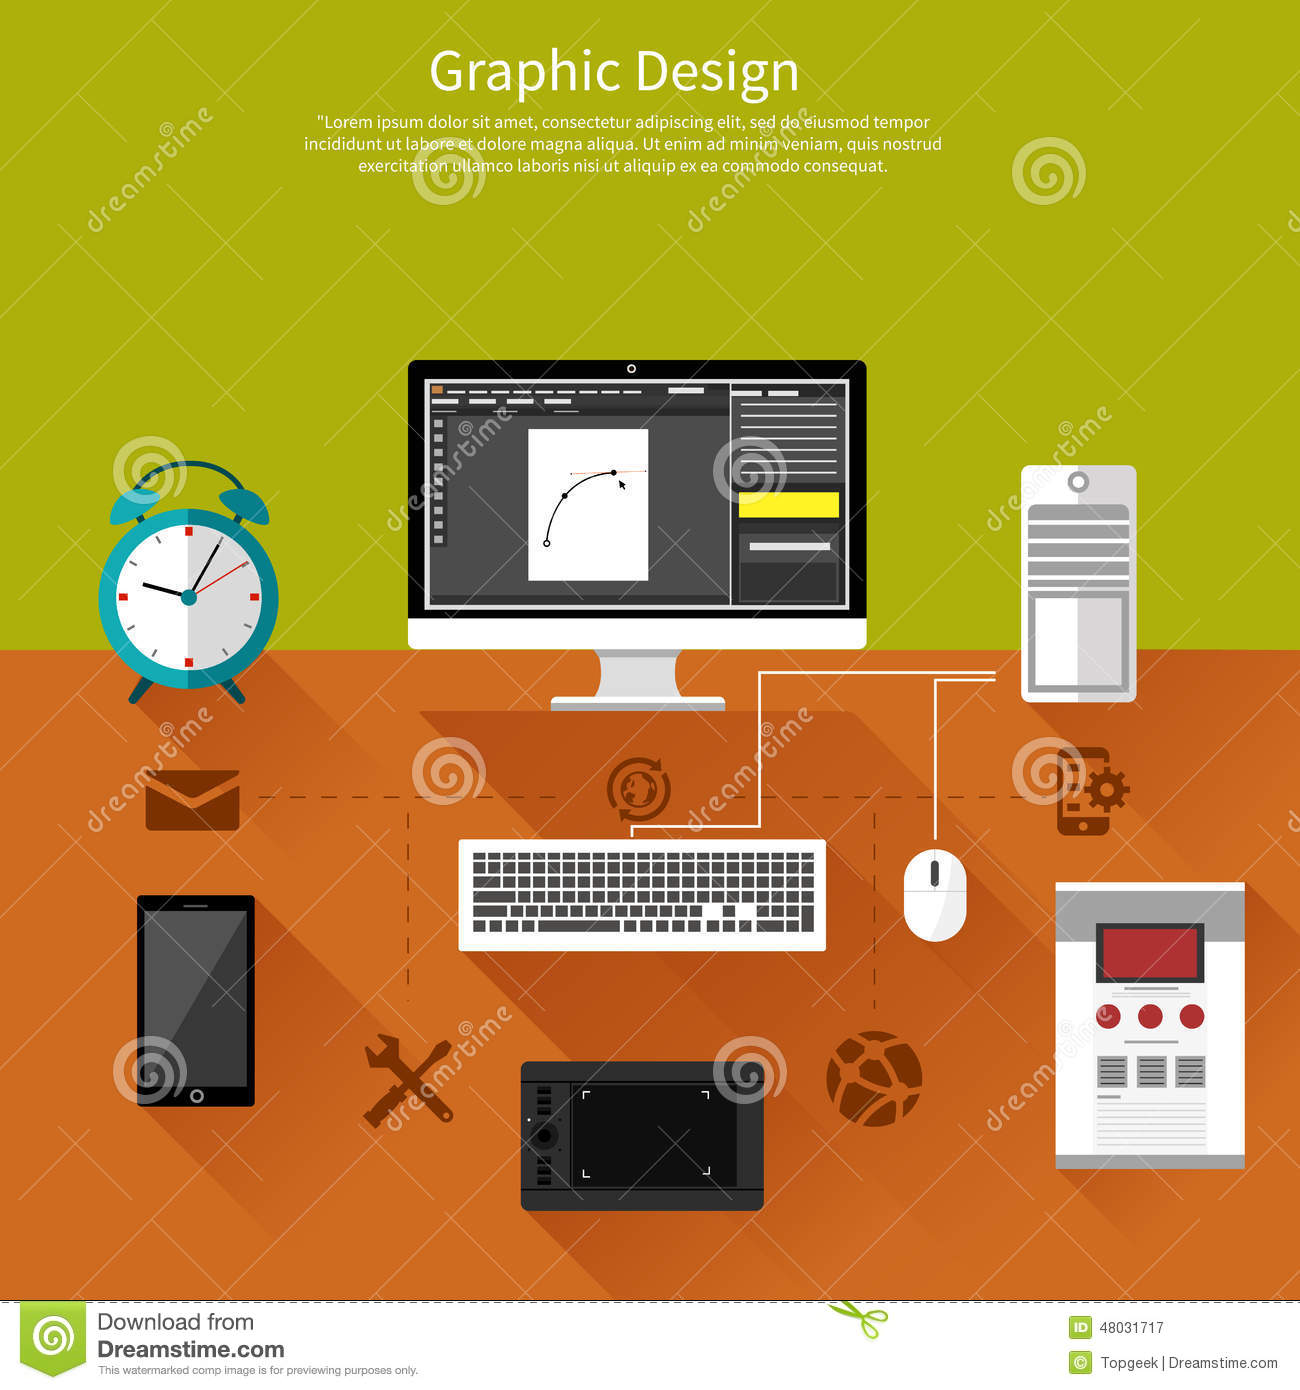 Graphic design and designer tools concept stock vector Art design software